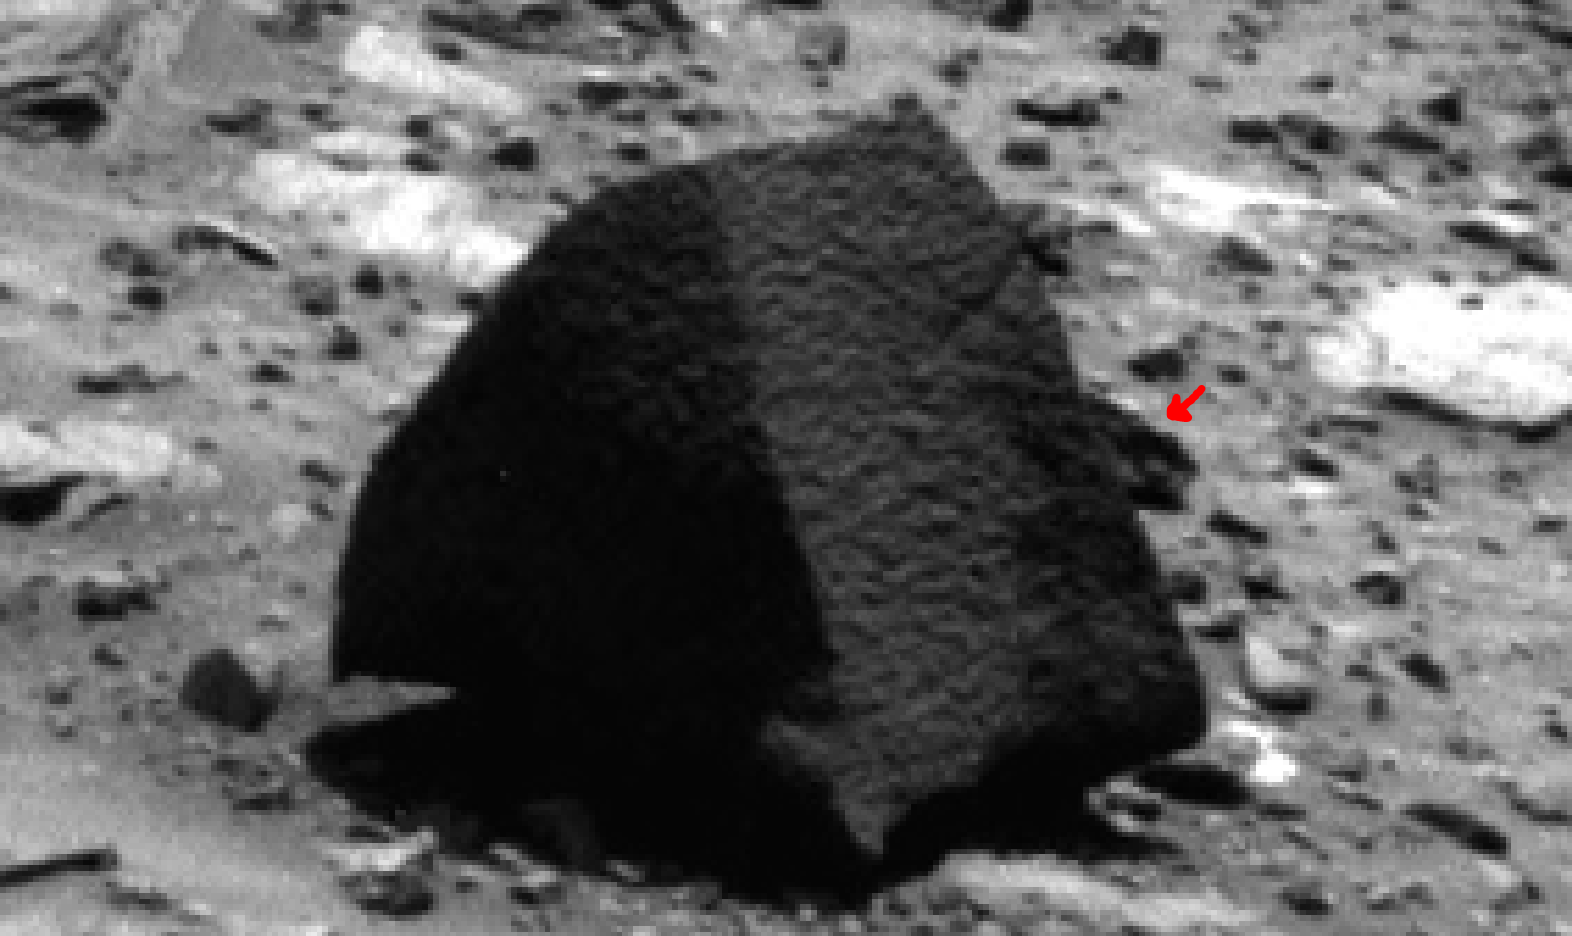 mars sol 1400 anomaly artifacts 7 was life on mars